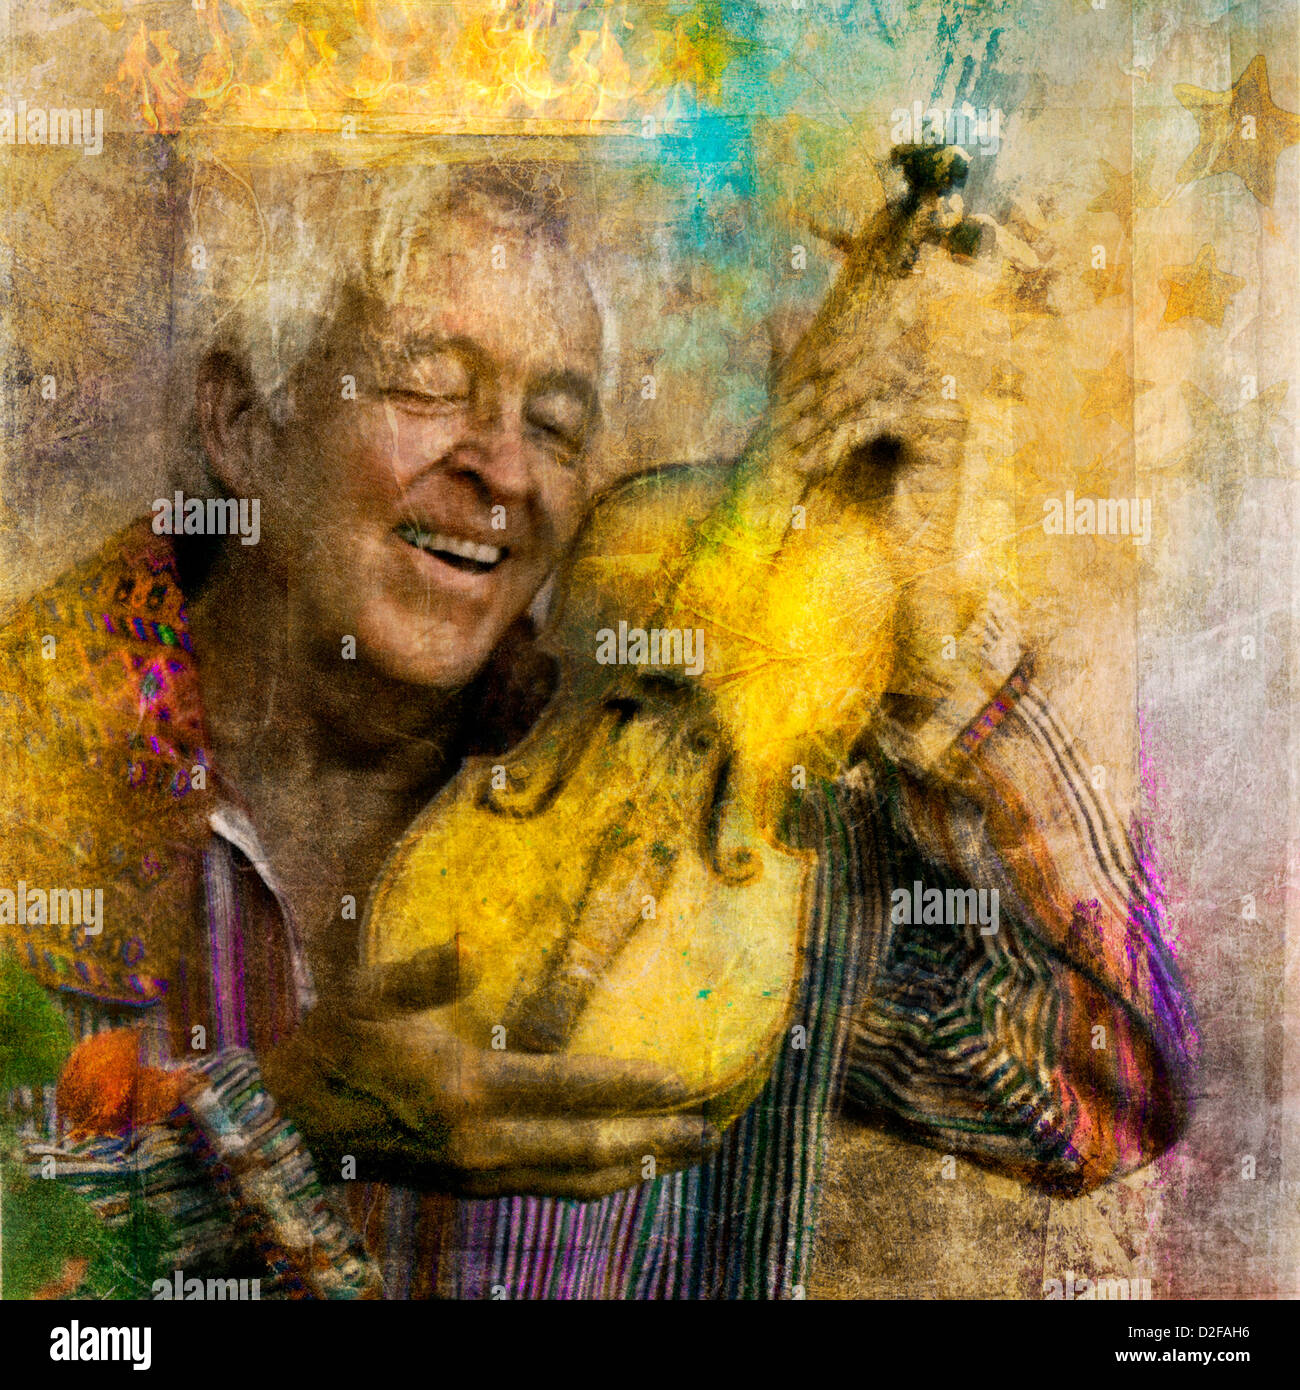 Joyful elder man with his yellow violin and an abstract crown of light. - Stock Image